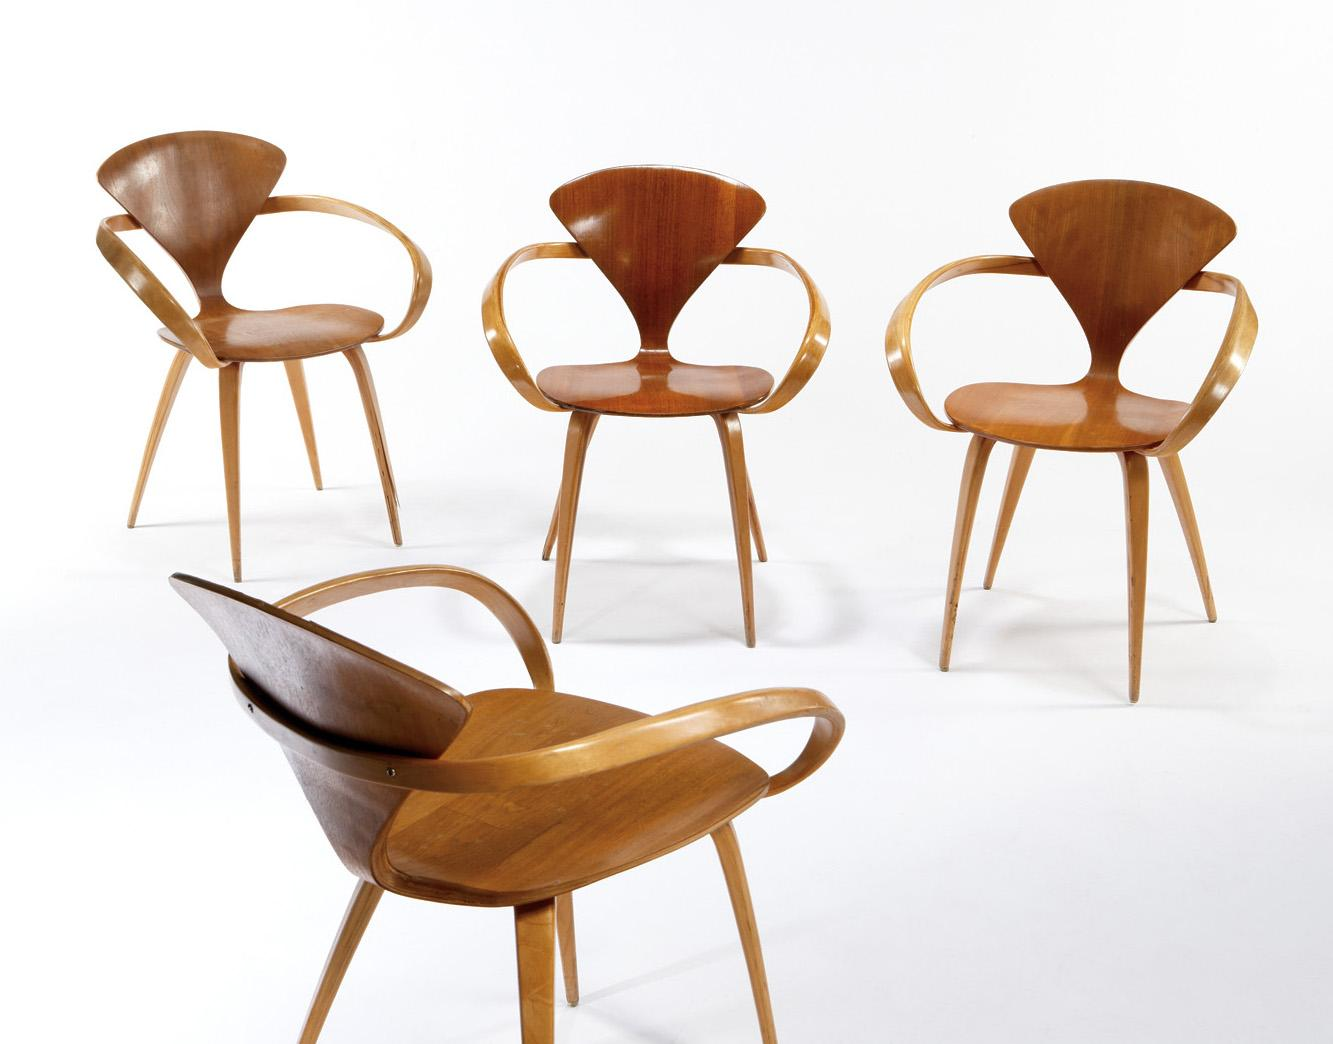 Image 1  Norman Cherner - Plycraft - Group of 4  Cherner  chairs  sc 1 st  iCollector.com : plycraft chairs - Cheerinfomania.Com